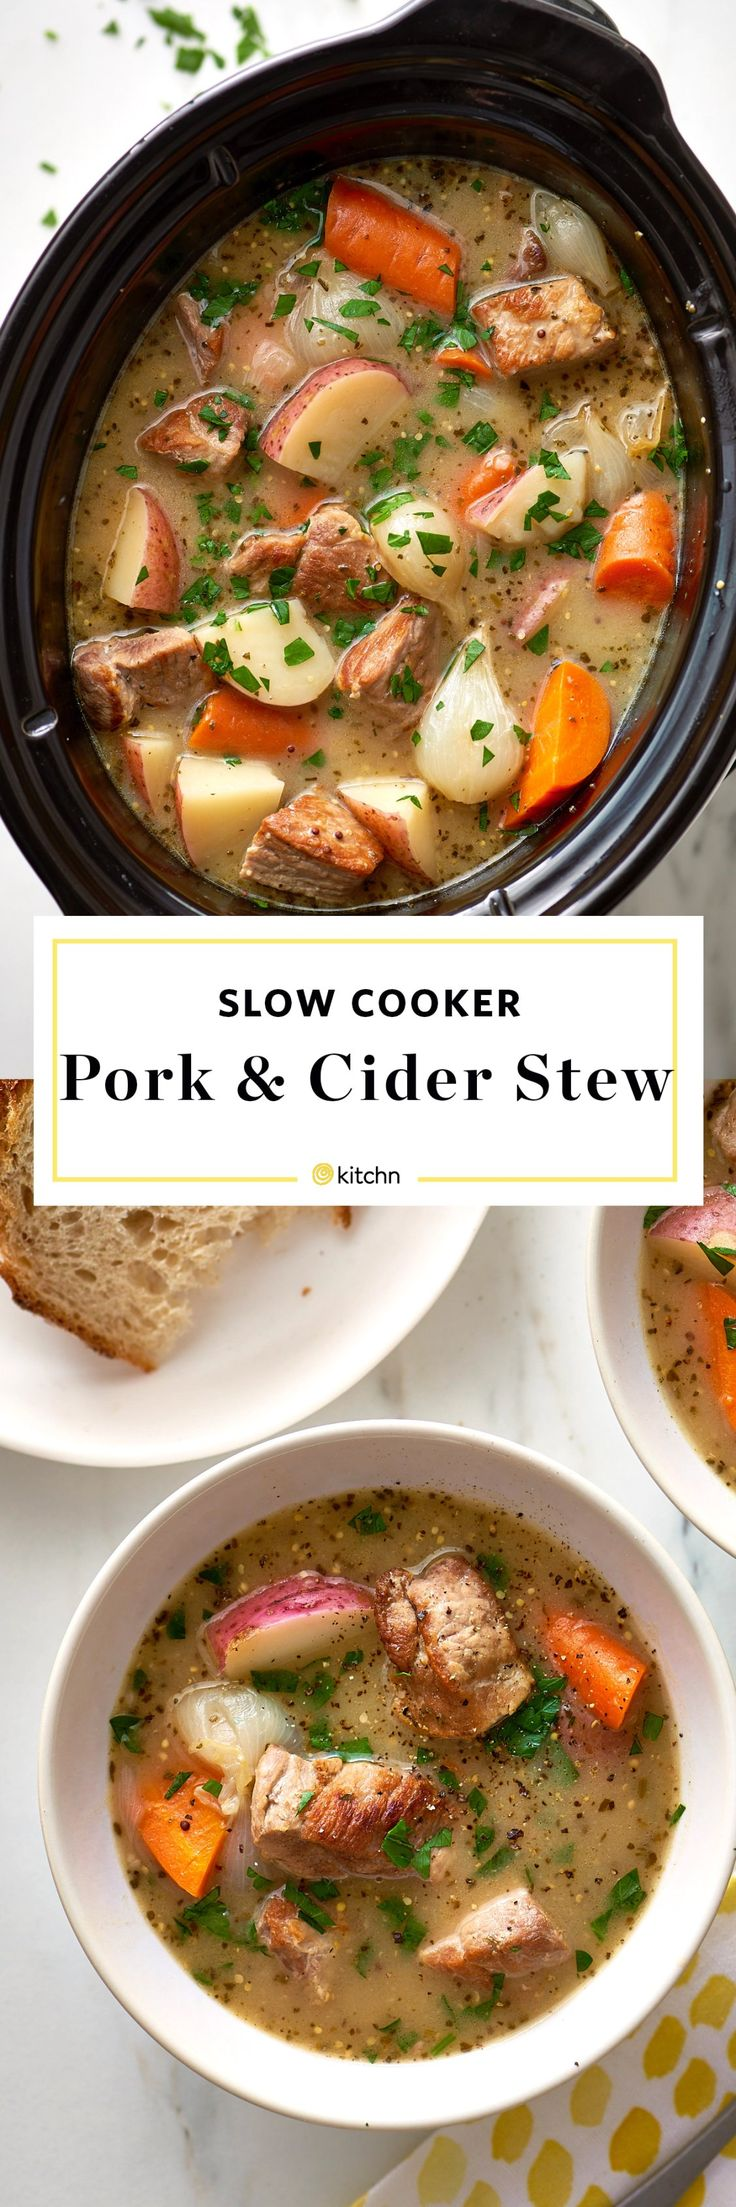 Slow Cooker Pork and Cider Stew Recipe. This cold weather comfort food soup is perfect if you're looking for ideas and recipes for winter and fall. Crock pots were basically made for this kind of recipe! You'll need to put the following in your crockpot: boneless pork shoulder, pearl onions, flour, chicken broth, sage, red potatoes, and apples.